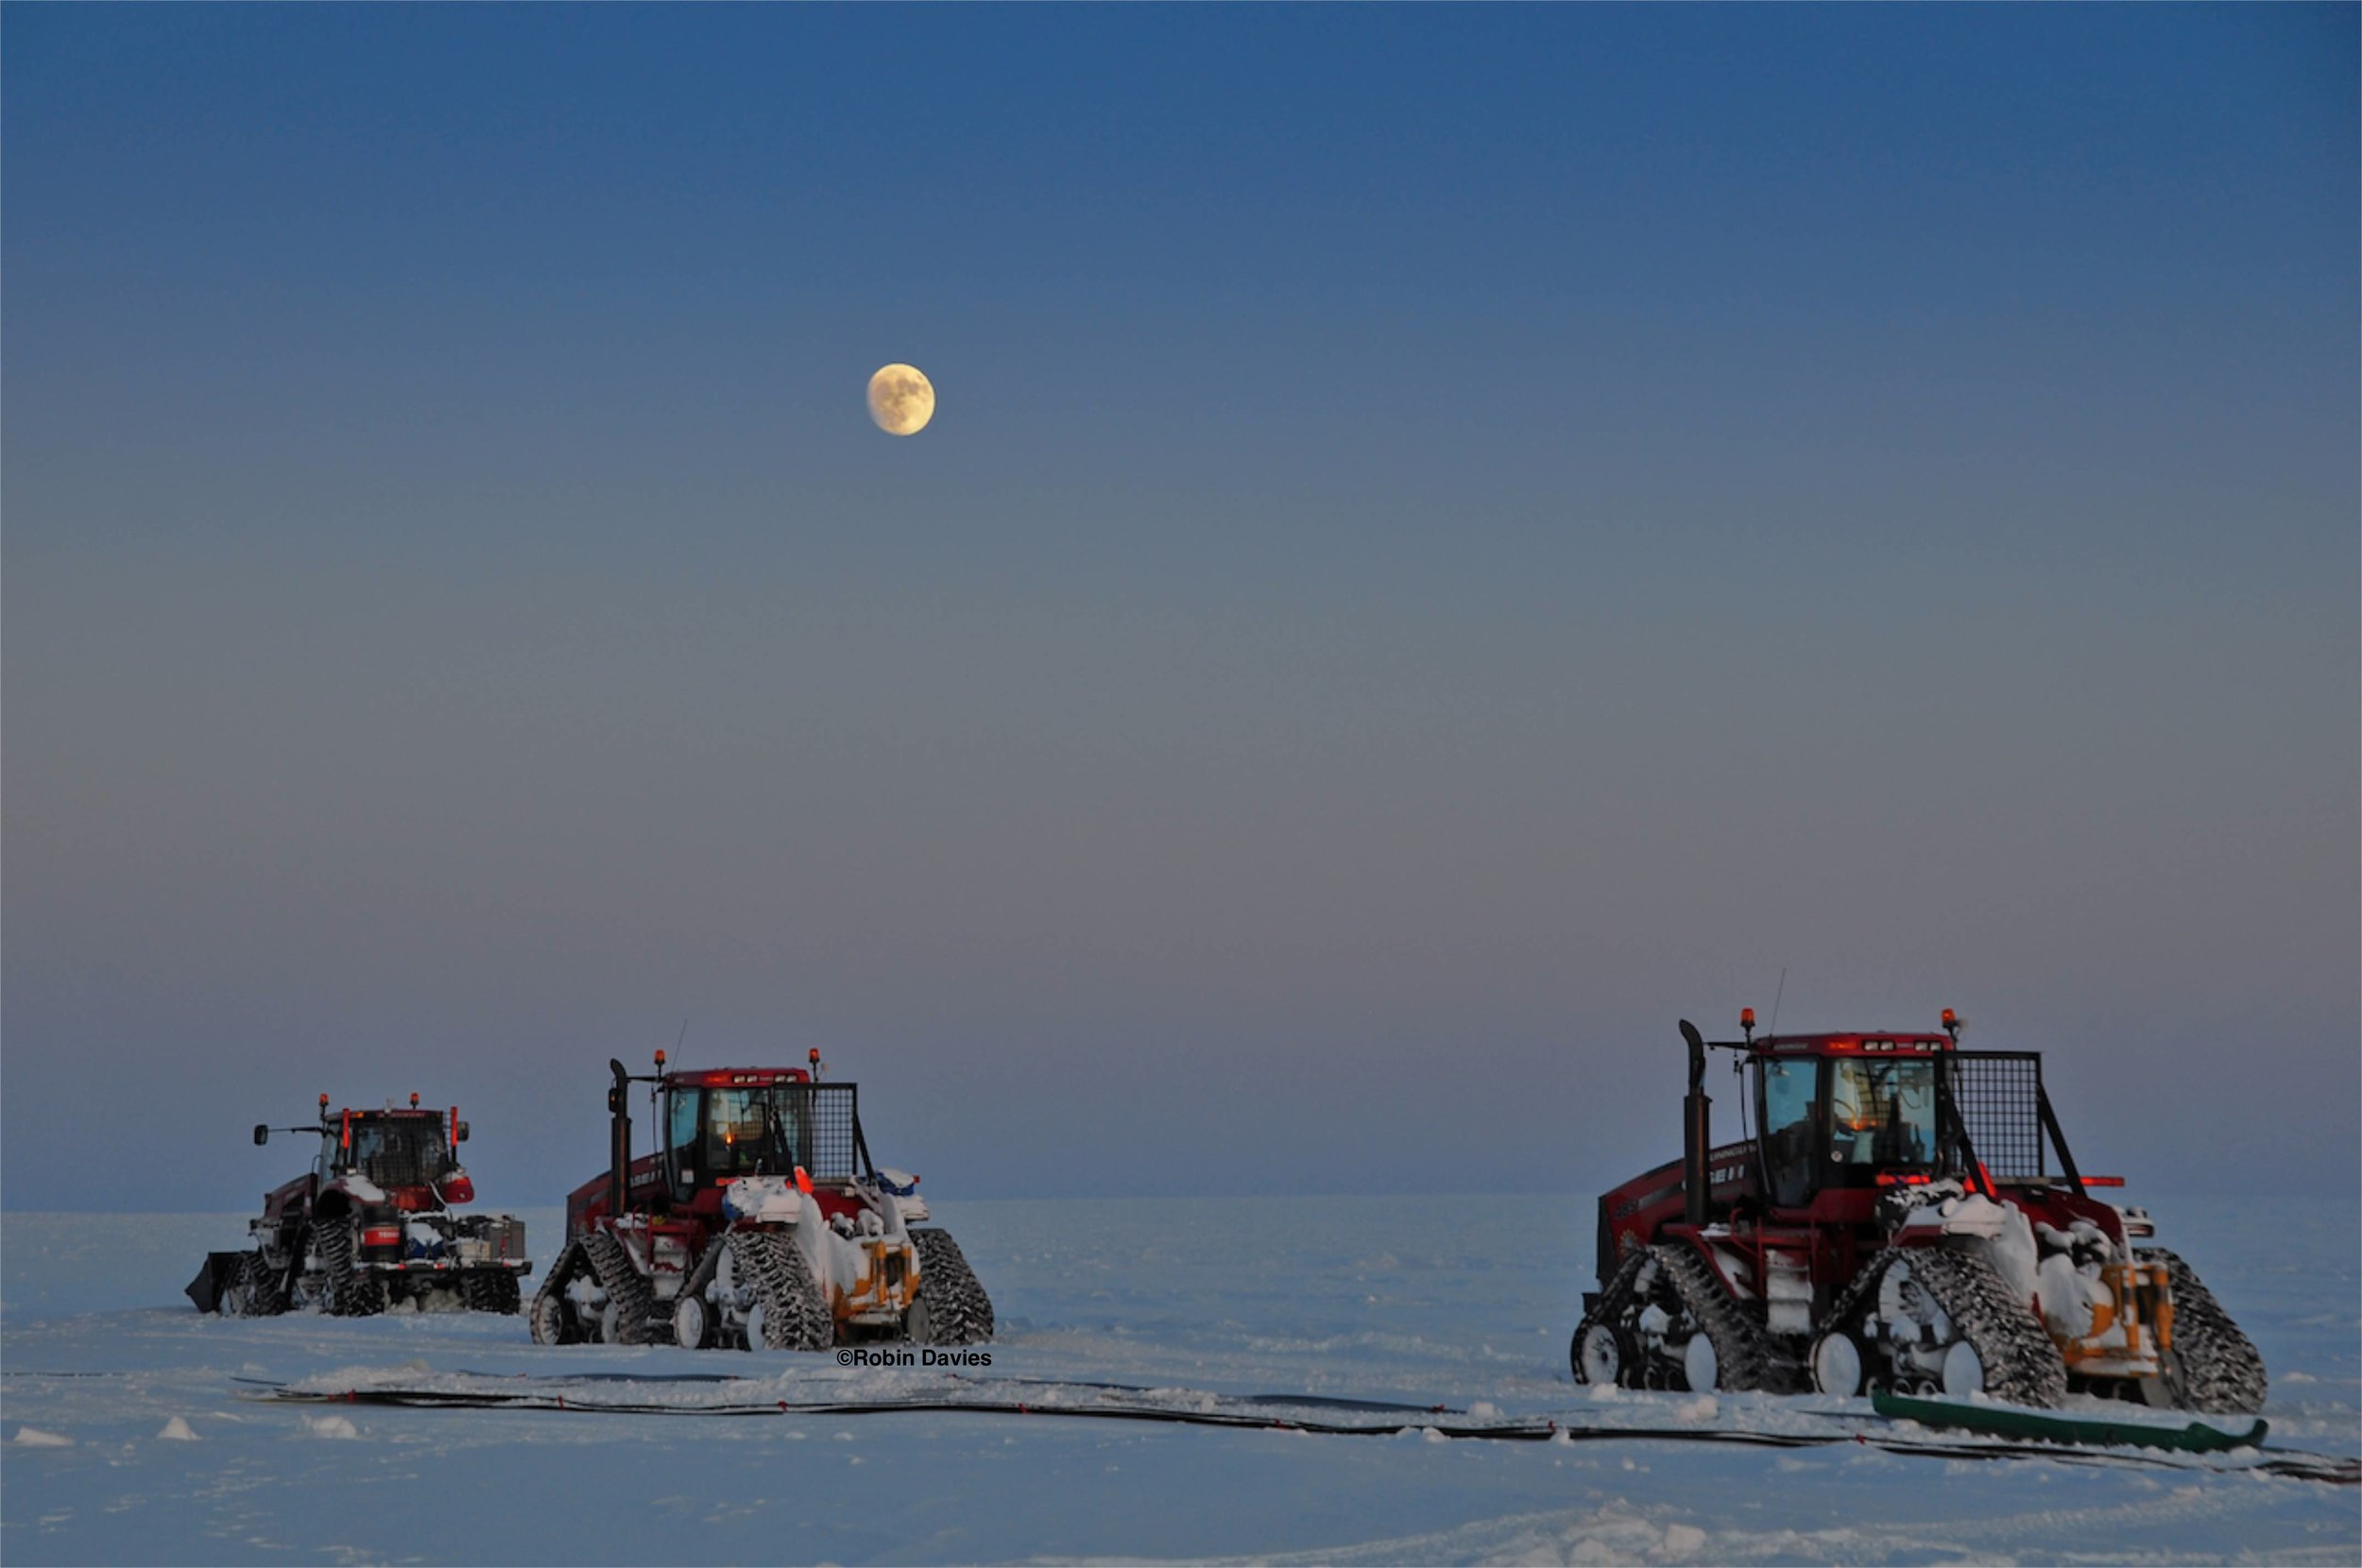 The GrIT fleet parked on the ice sheet under the fading night sky. Photo: Robin Davies